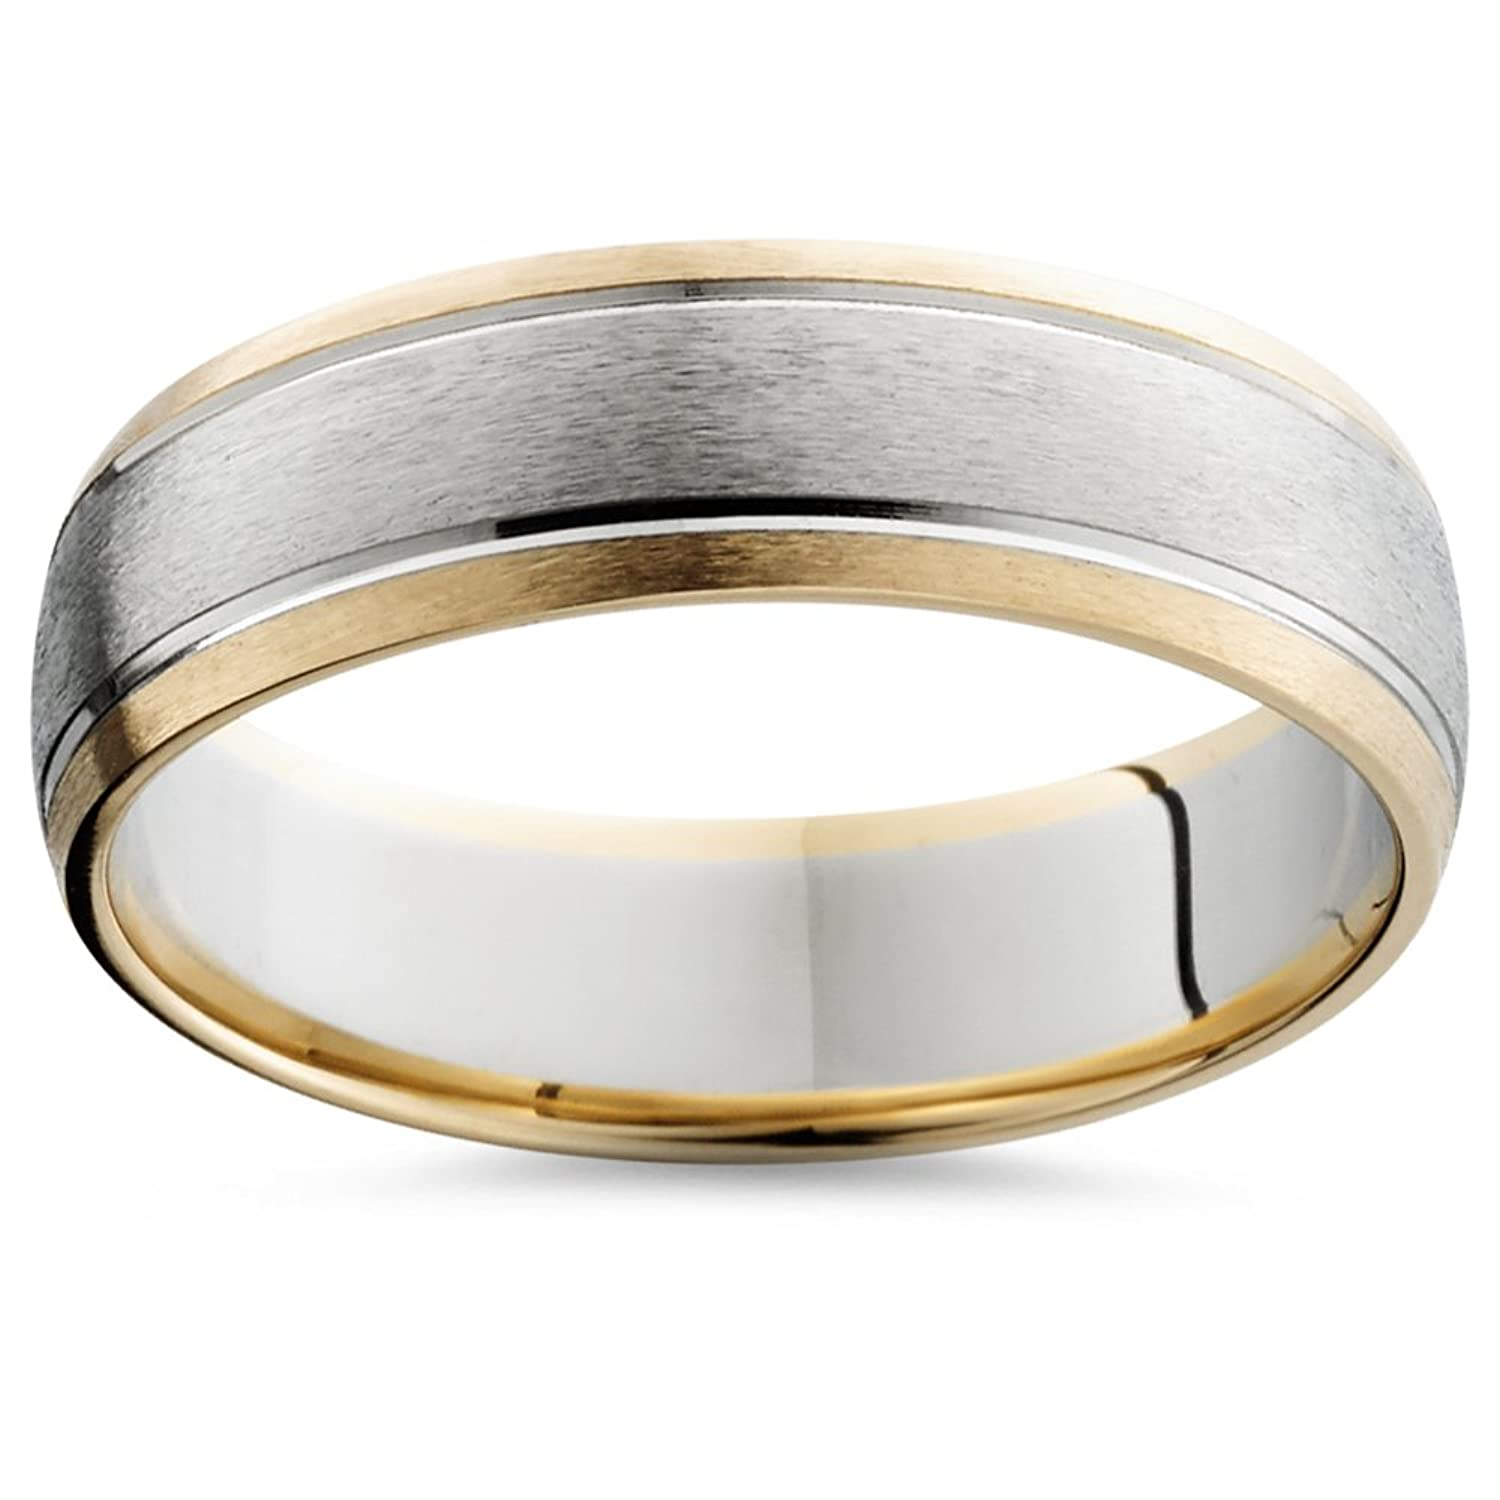 bands gold band jewelers white wedding rose mullen mens and products